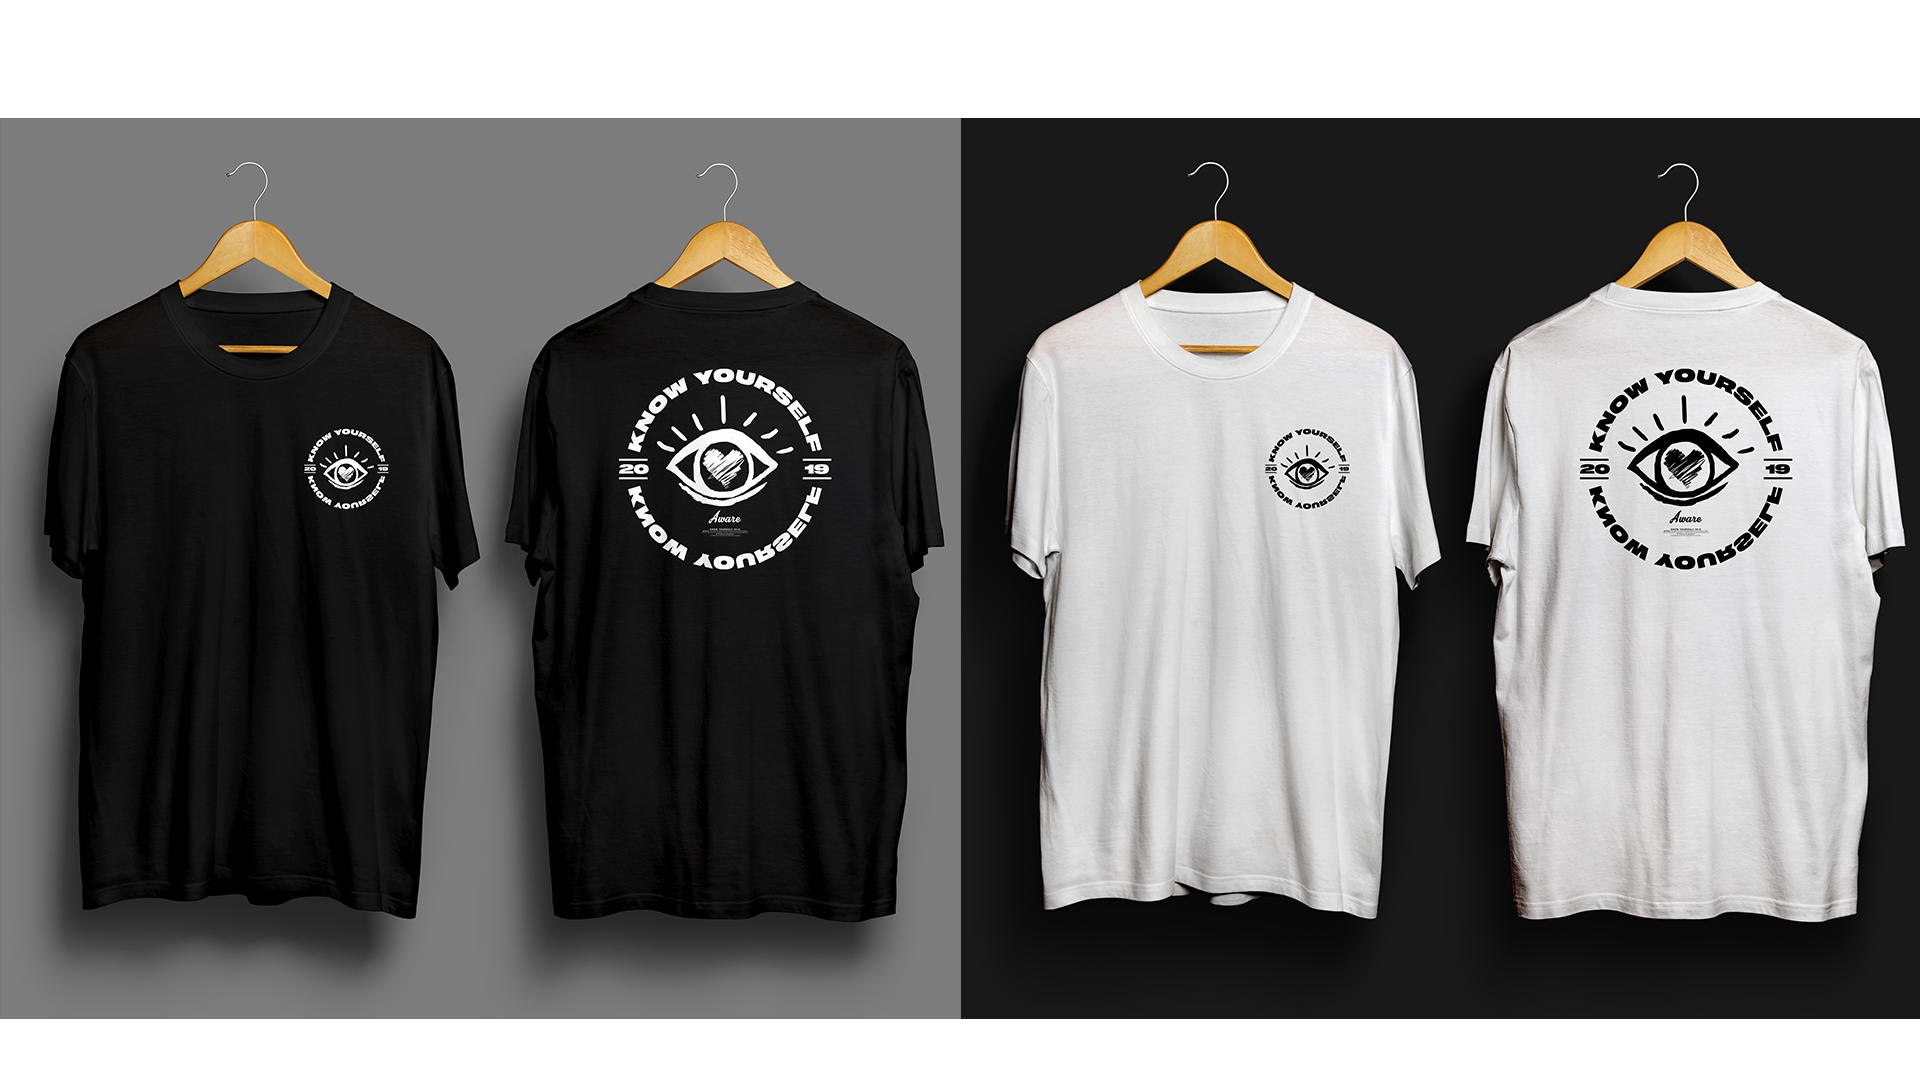 """Know Yourself Collection - This collection featured the signature eye logo in emblem form surrounded by the arching phrase """"know yourself"""". In 2019, the """"pocket"""" printing location became incredibly popular. The emblem was duplicated on the back at larger scale, which was also a huge trend."""